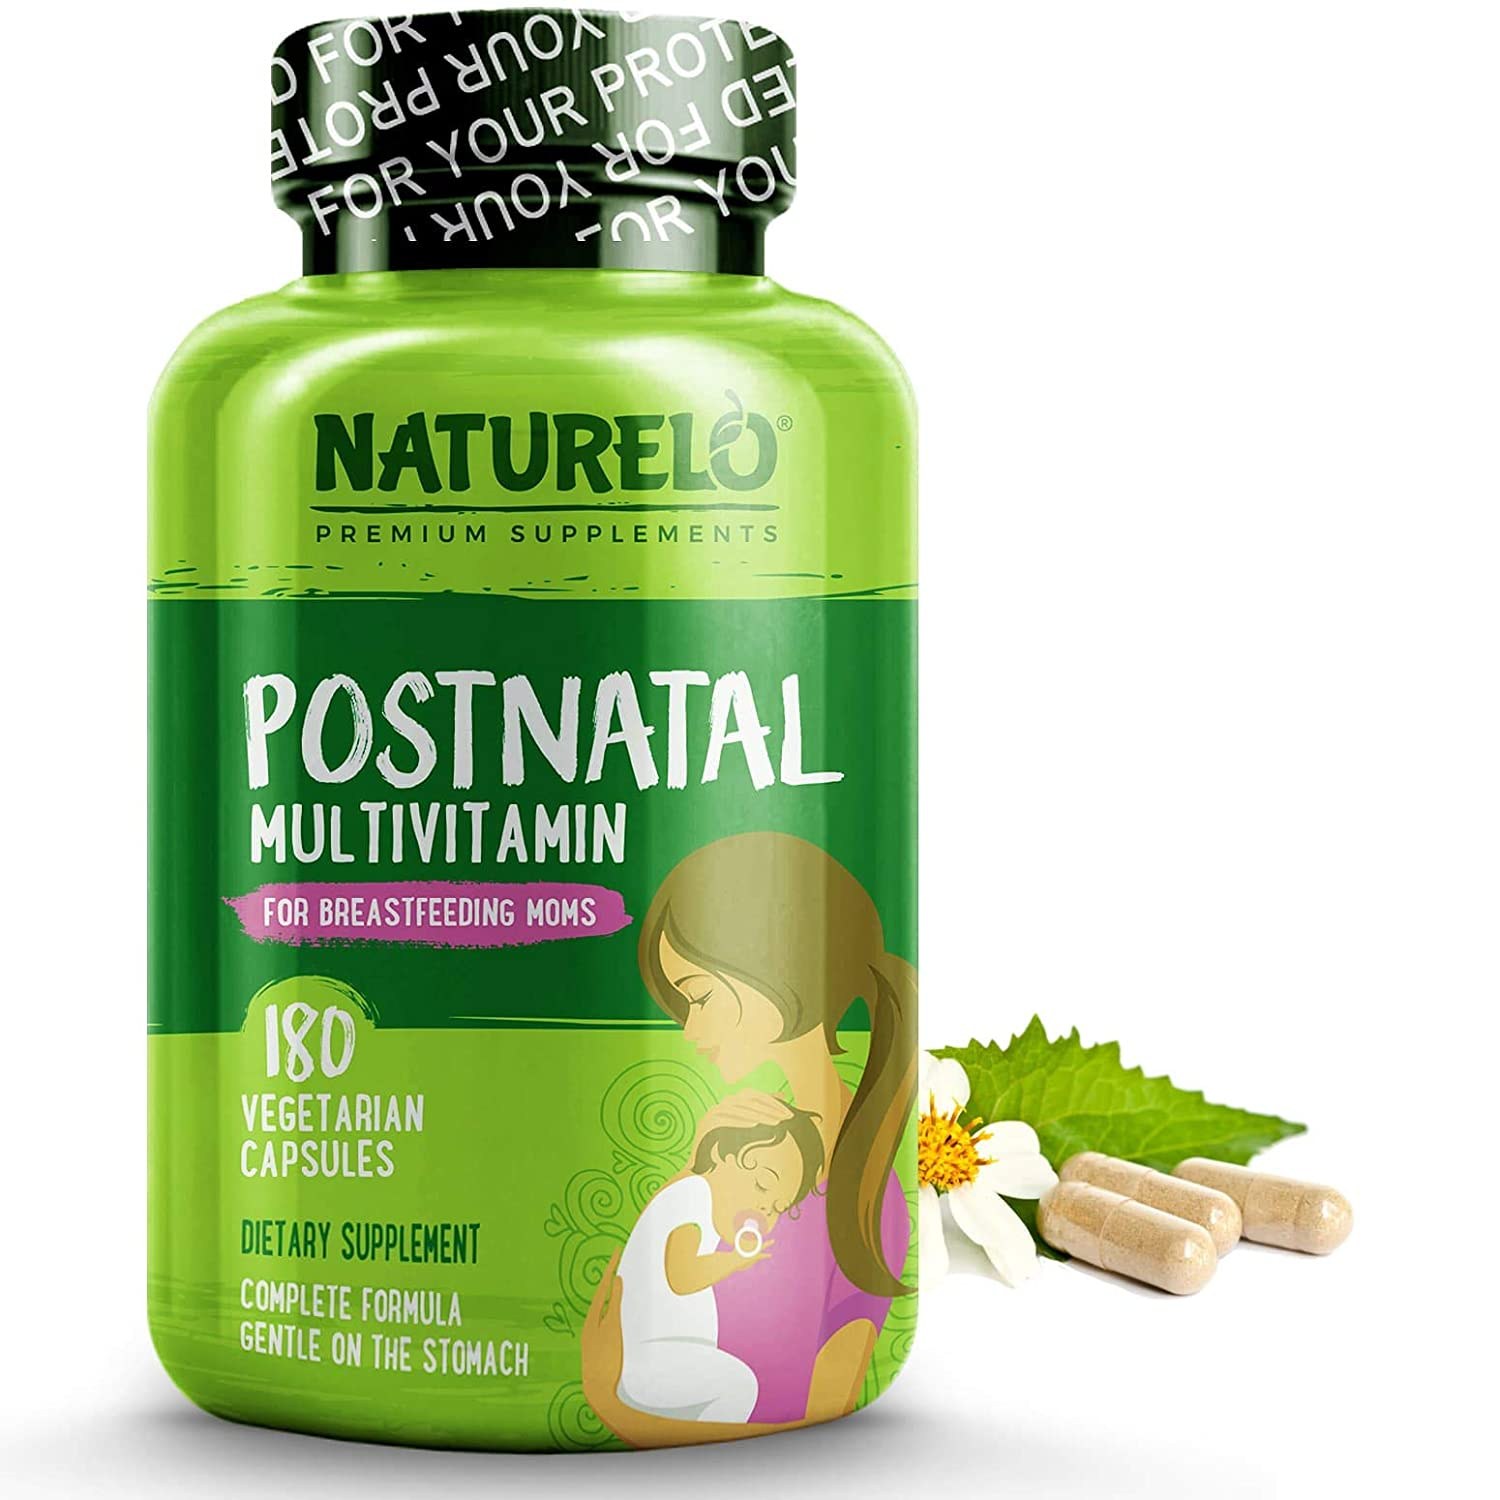 NATURELO Post Natal Multivitamin – Whole Food Postnatal Supplement for Breastfeeding Women – Organic Herbs to Boost Milk Supply – Vitamin D, Folate, Calcium – Best for Nursing Mother, Baby – 180 Caps